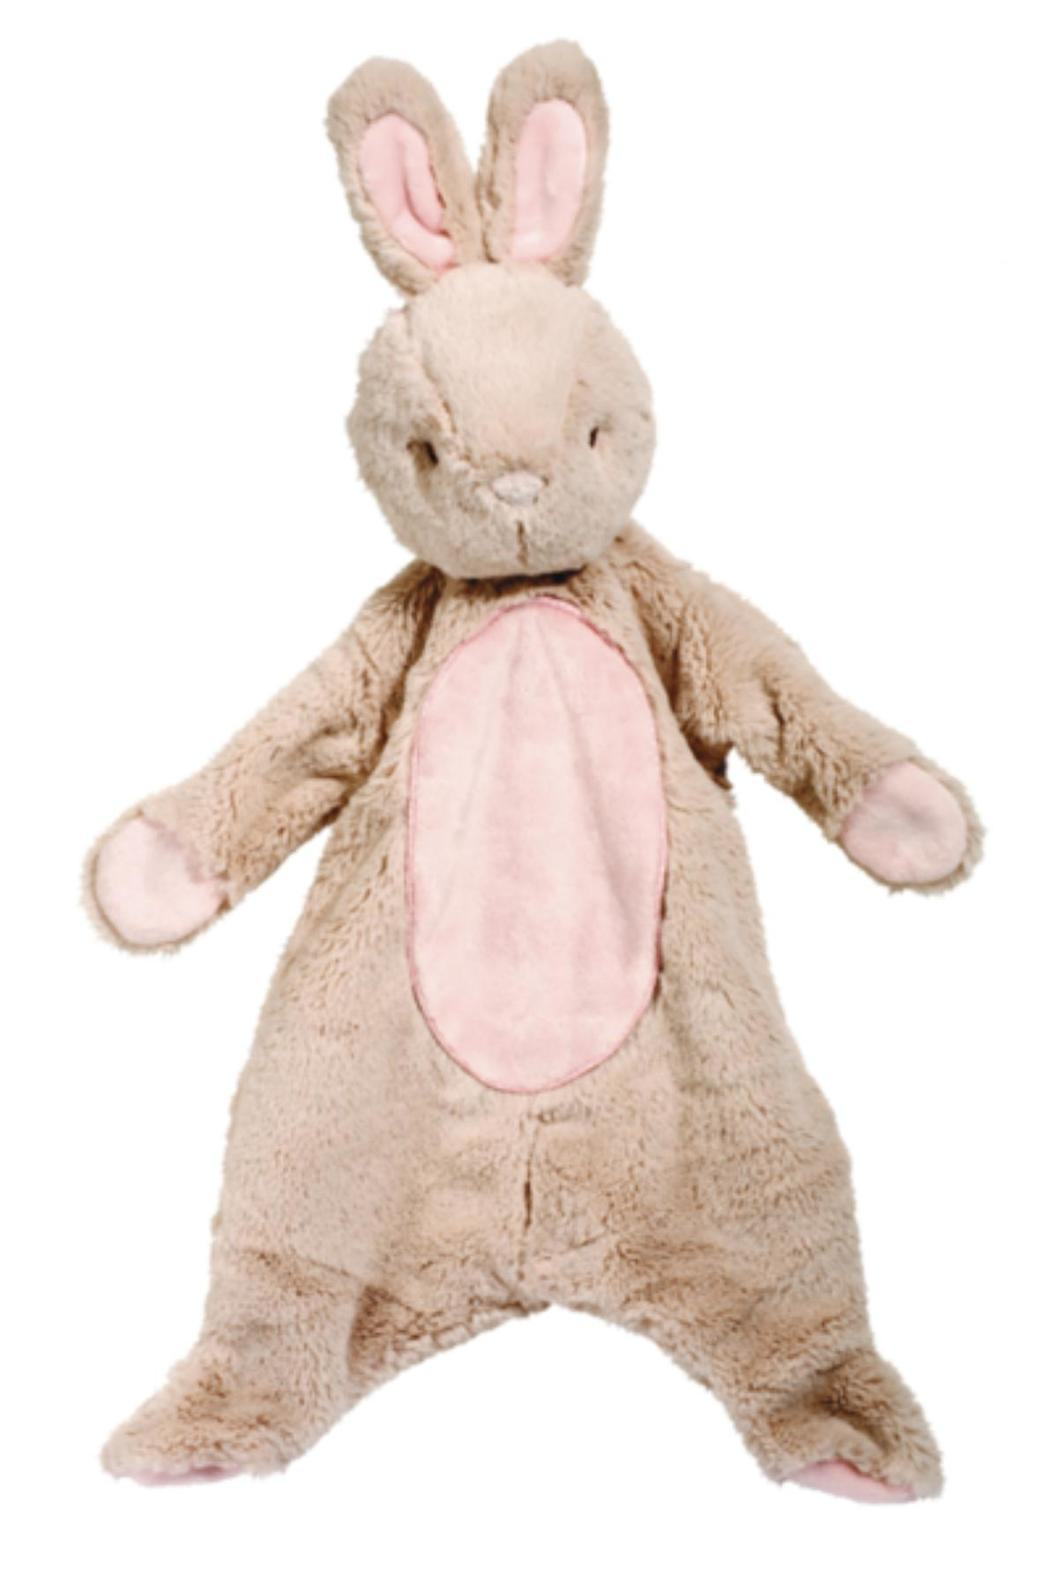 Douglas Bunny Sshlumpie Toy from Oregon by Copper Creek ...